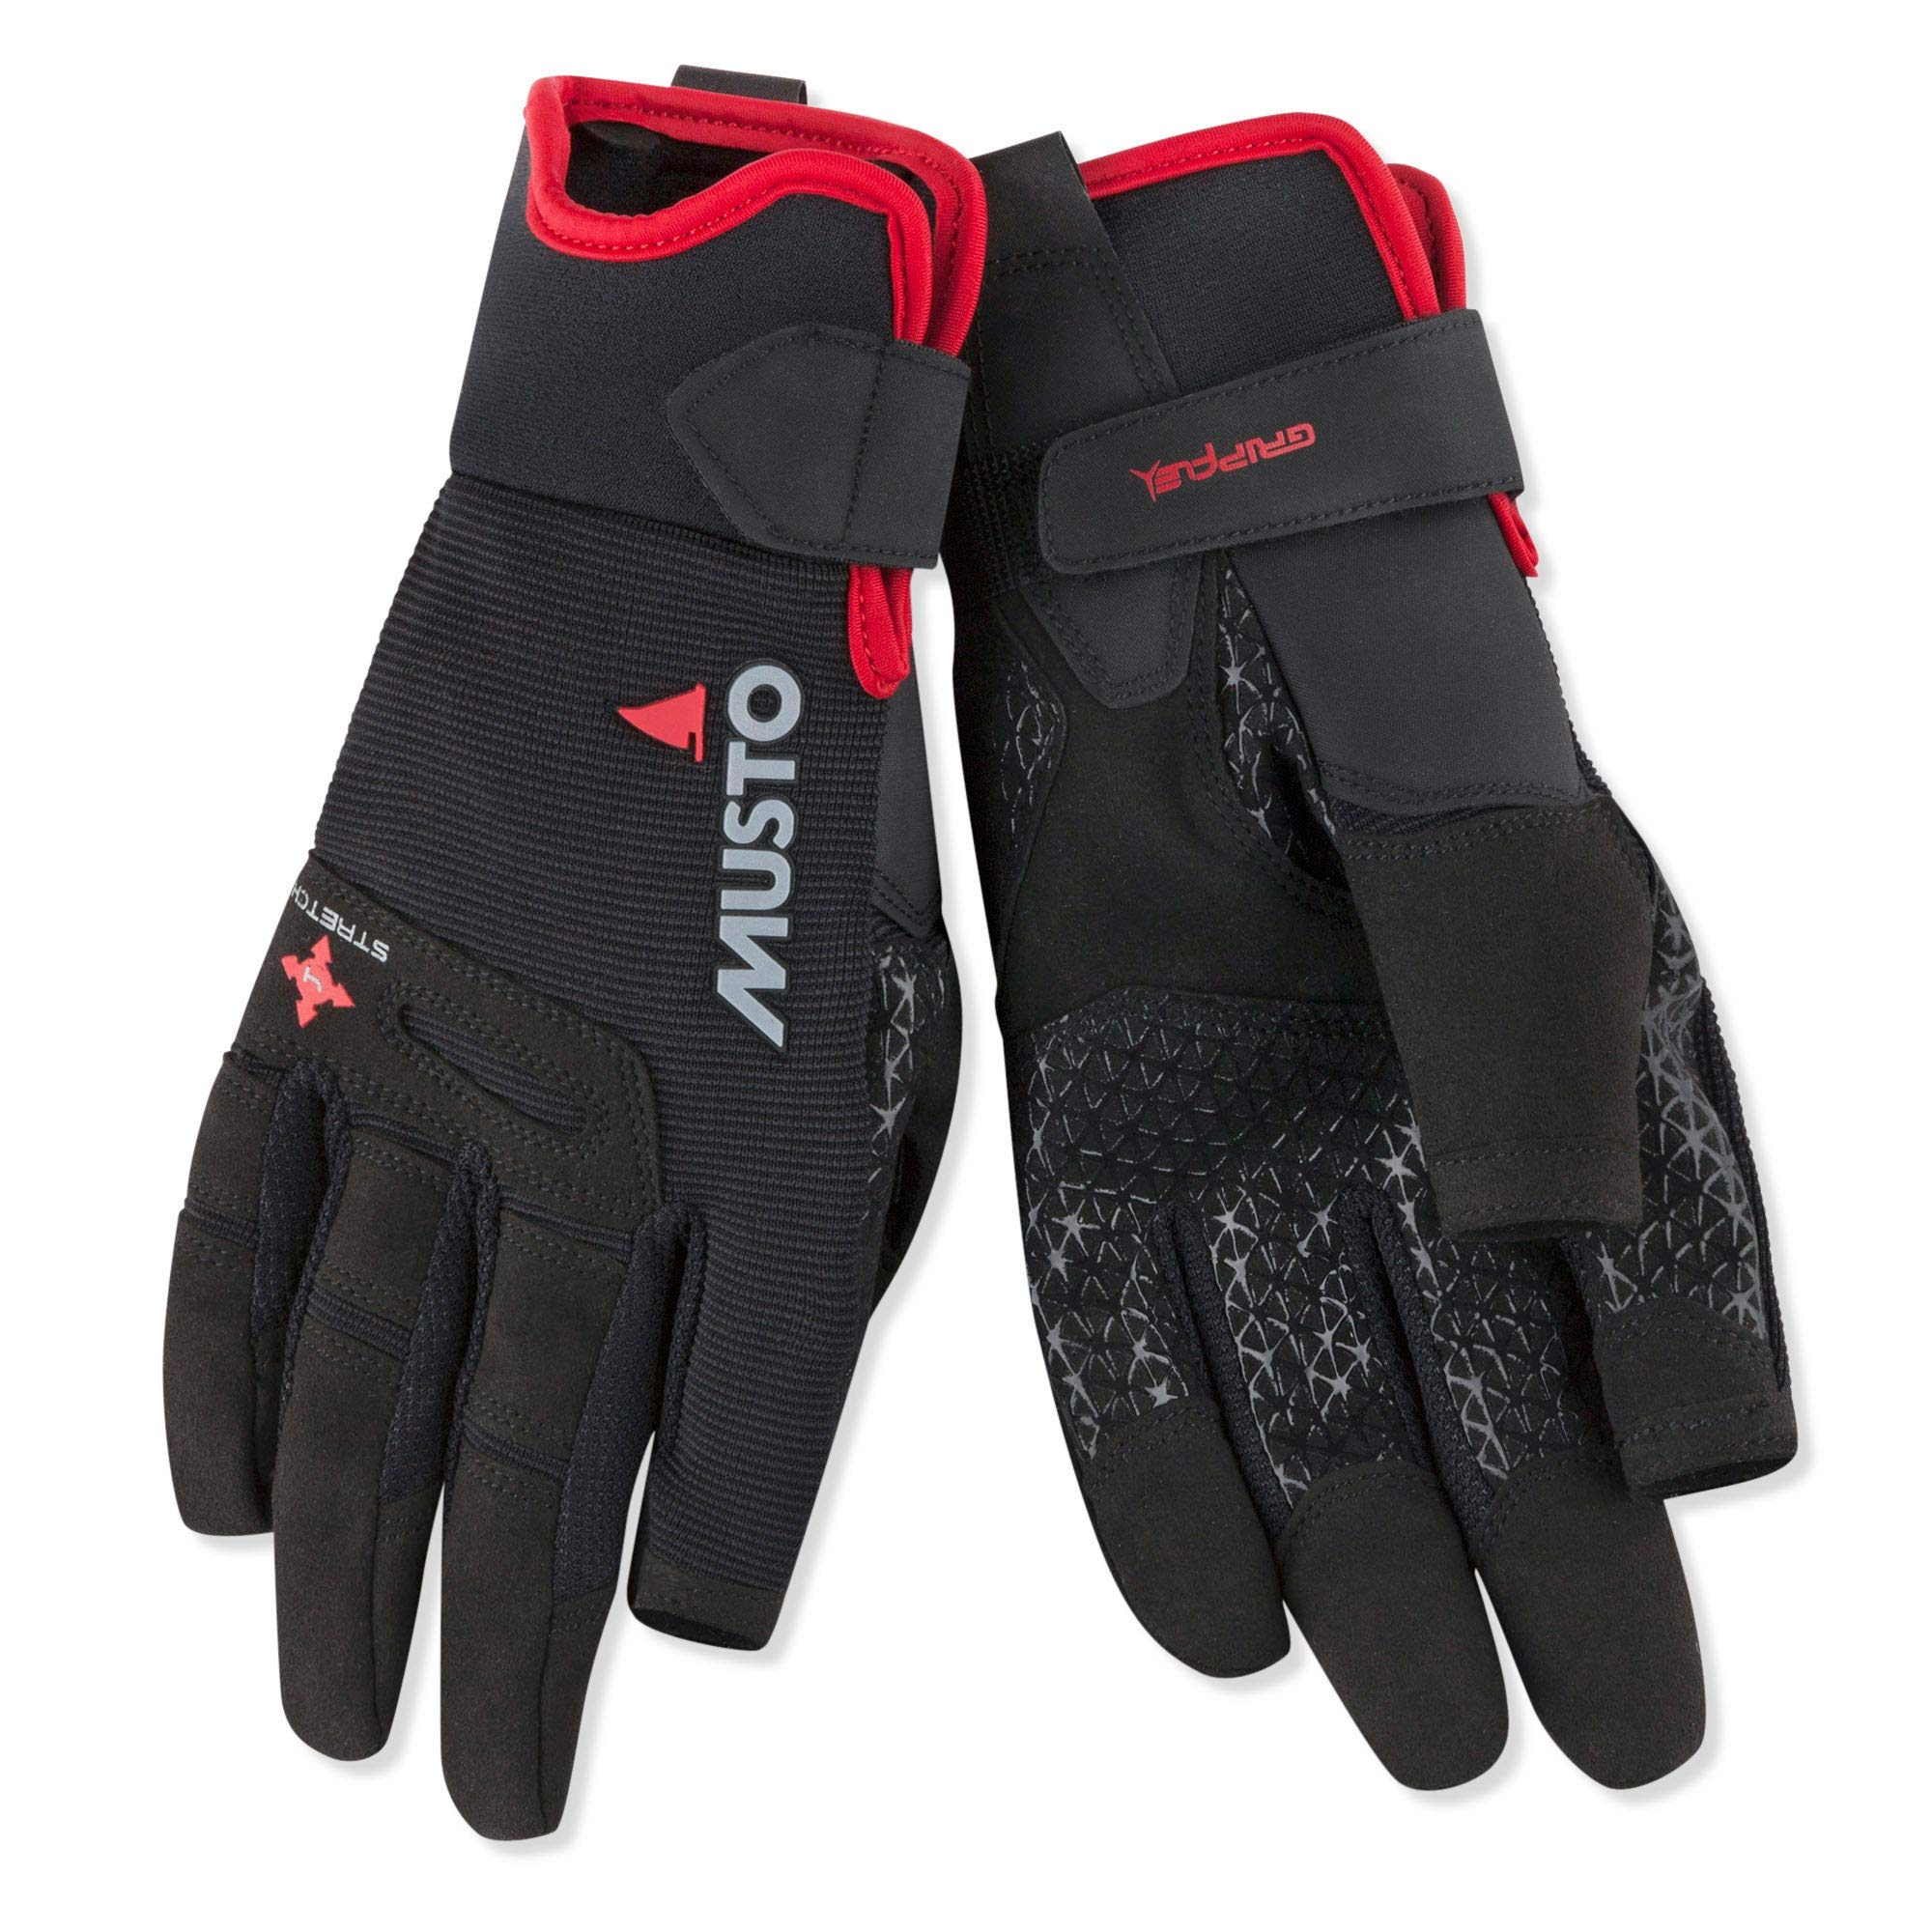 Musto Performance Long Finger Sailing Gloves - 2018 - Black XXL by Musto